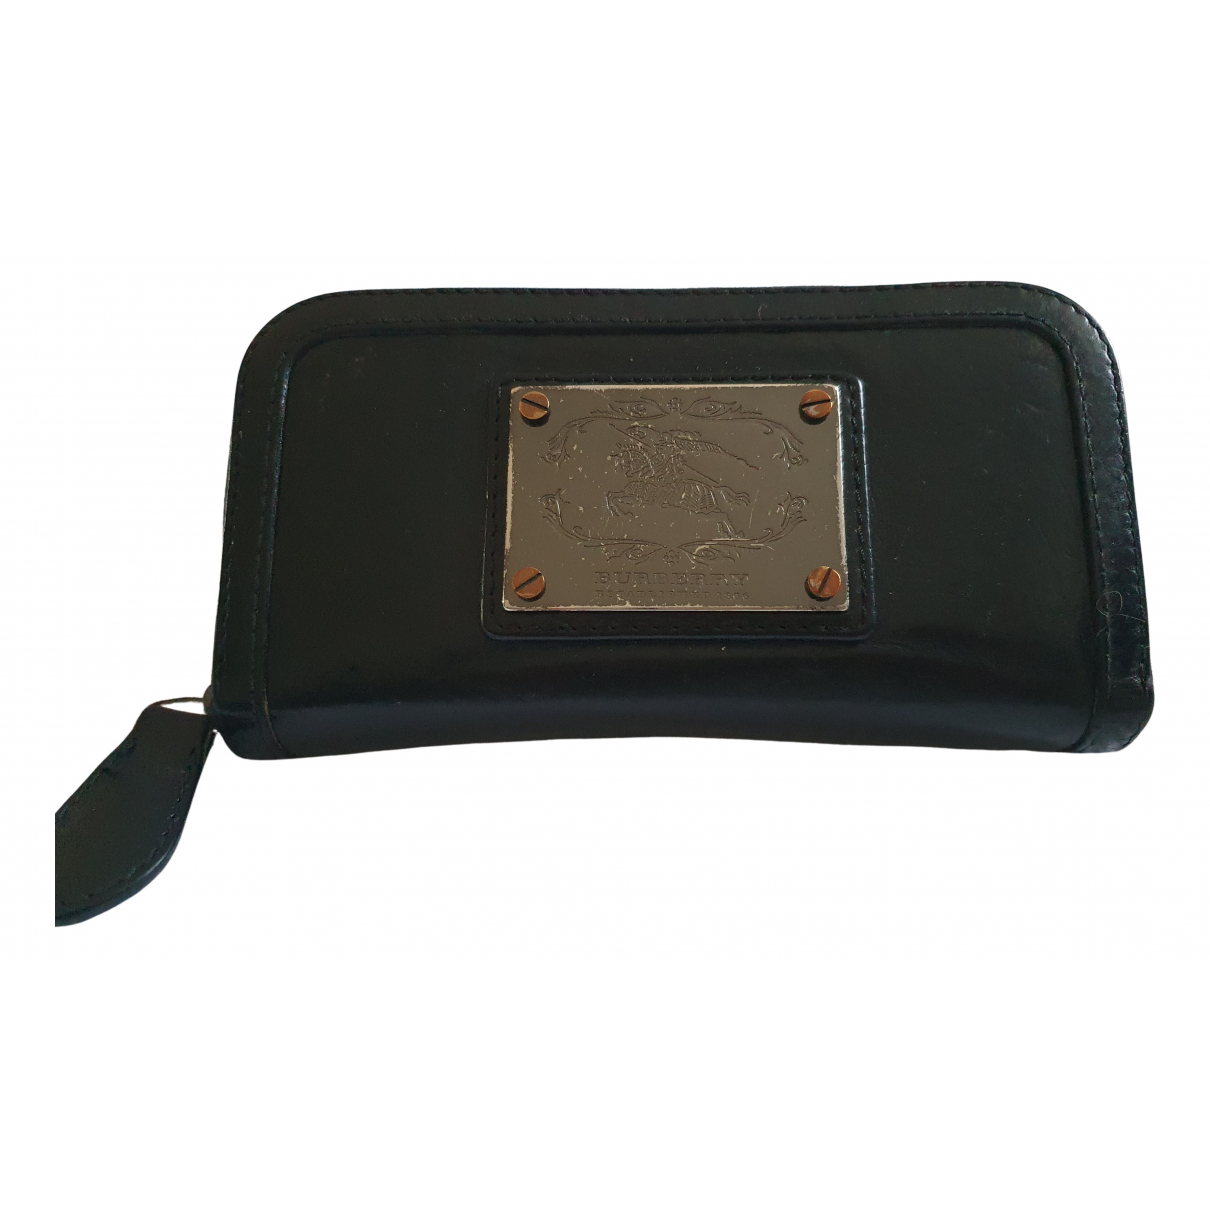 Burberry N Black Leather Purses, wallet & cases for Women N